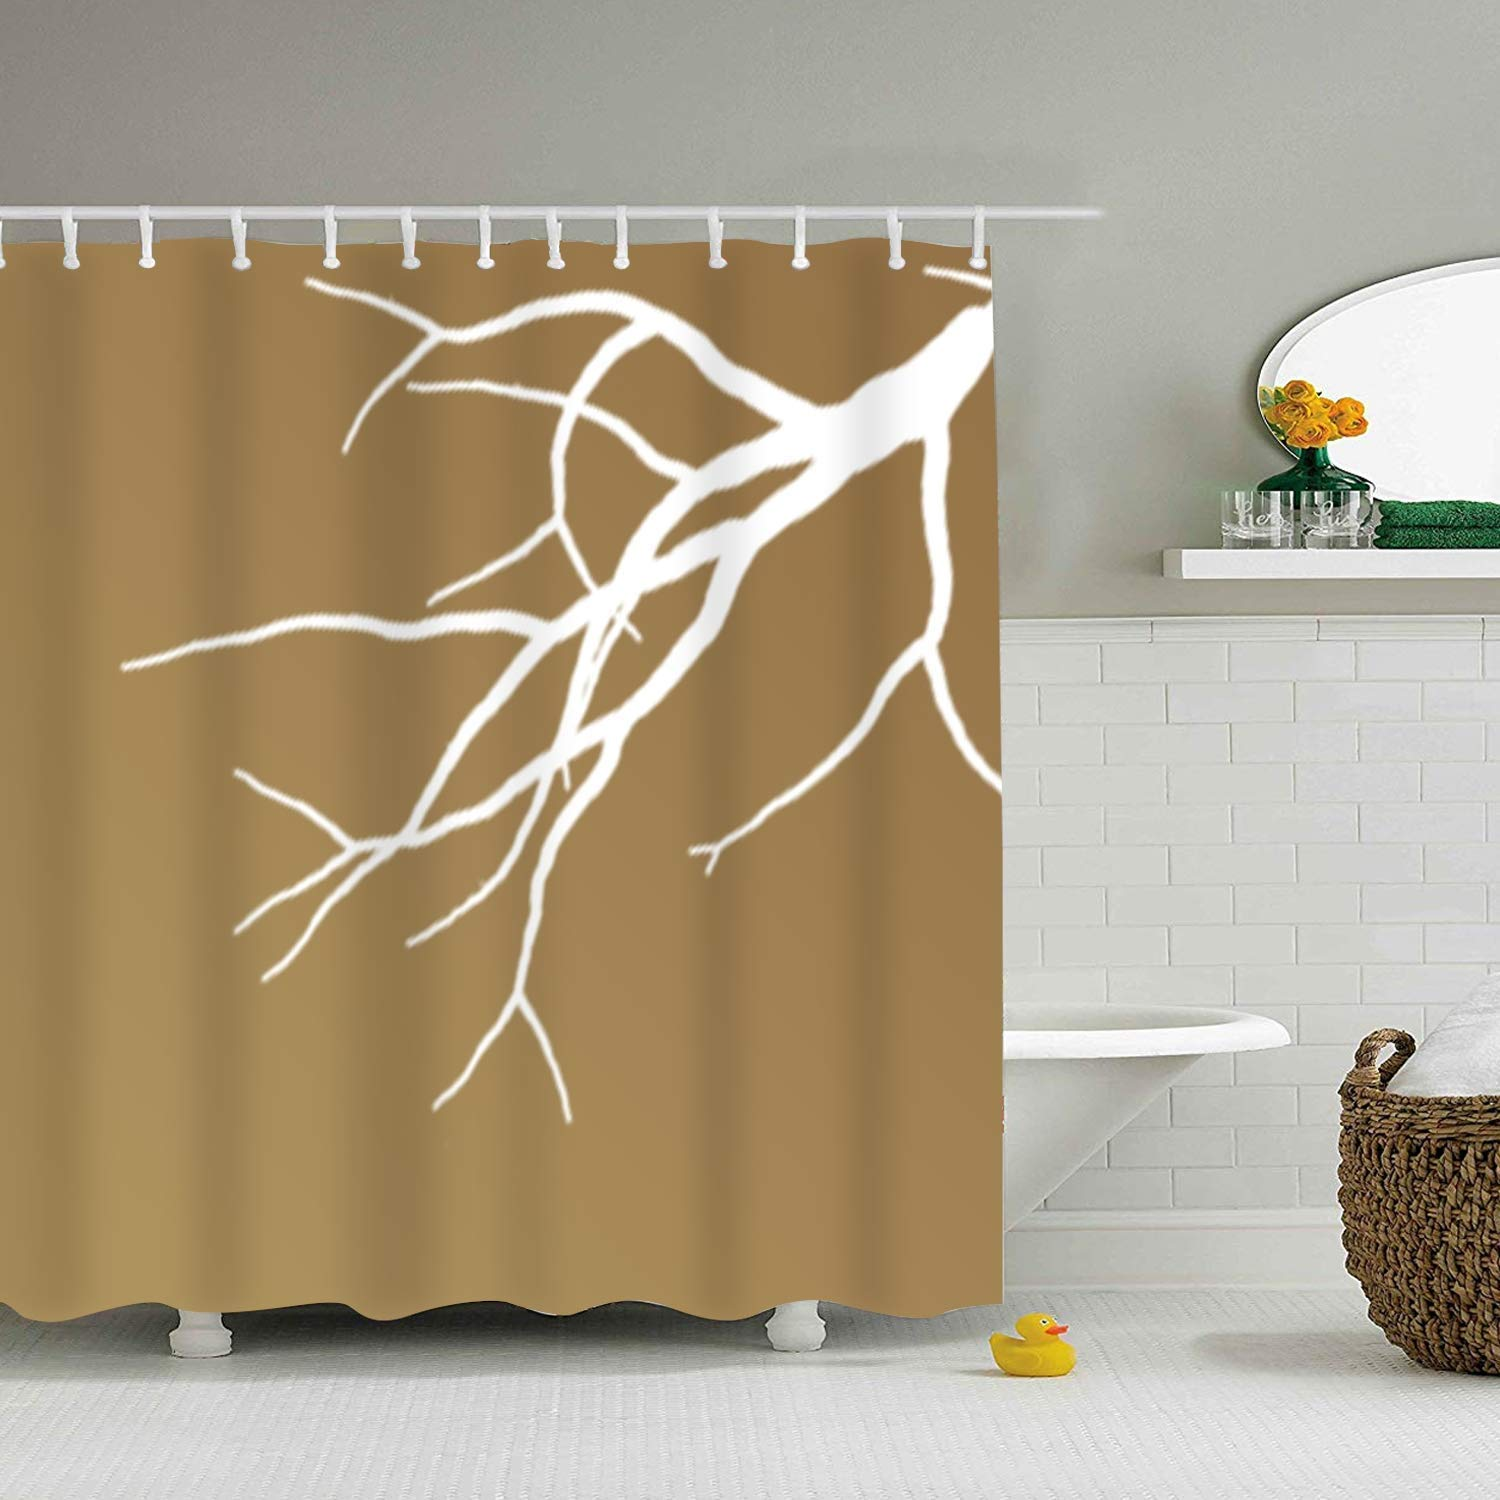 Amazon Dongingp Thin Split Branch Polyester Fabric Waterproof Shower Curtain Sets With Hooks Creative Bathroom Gift For Family Home